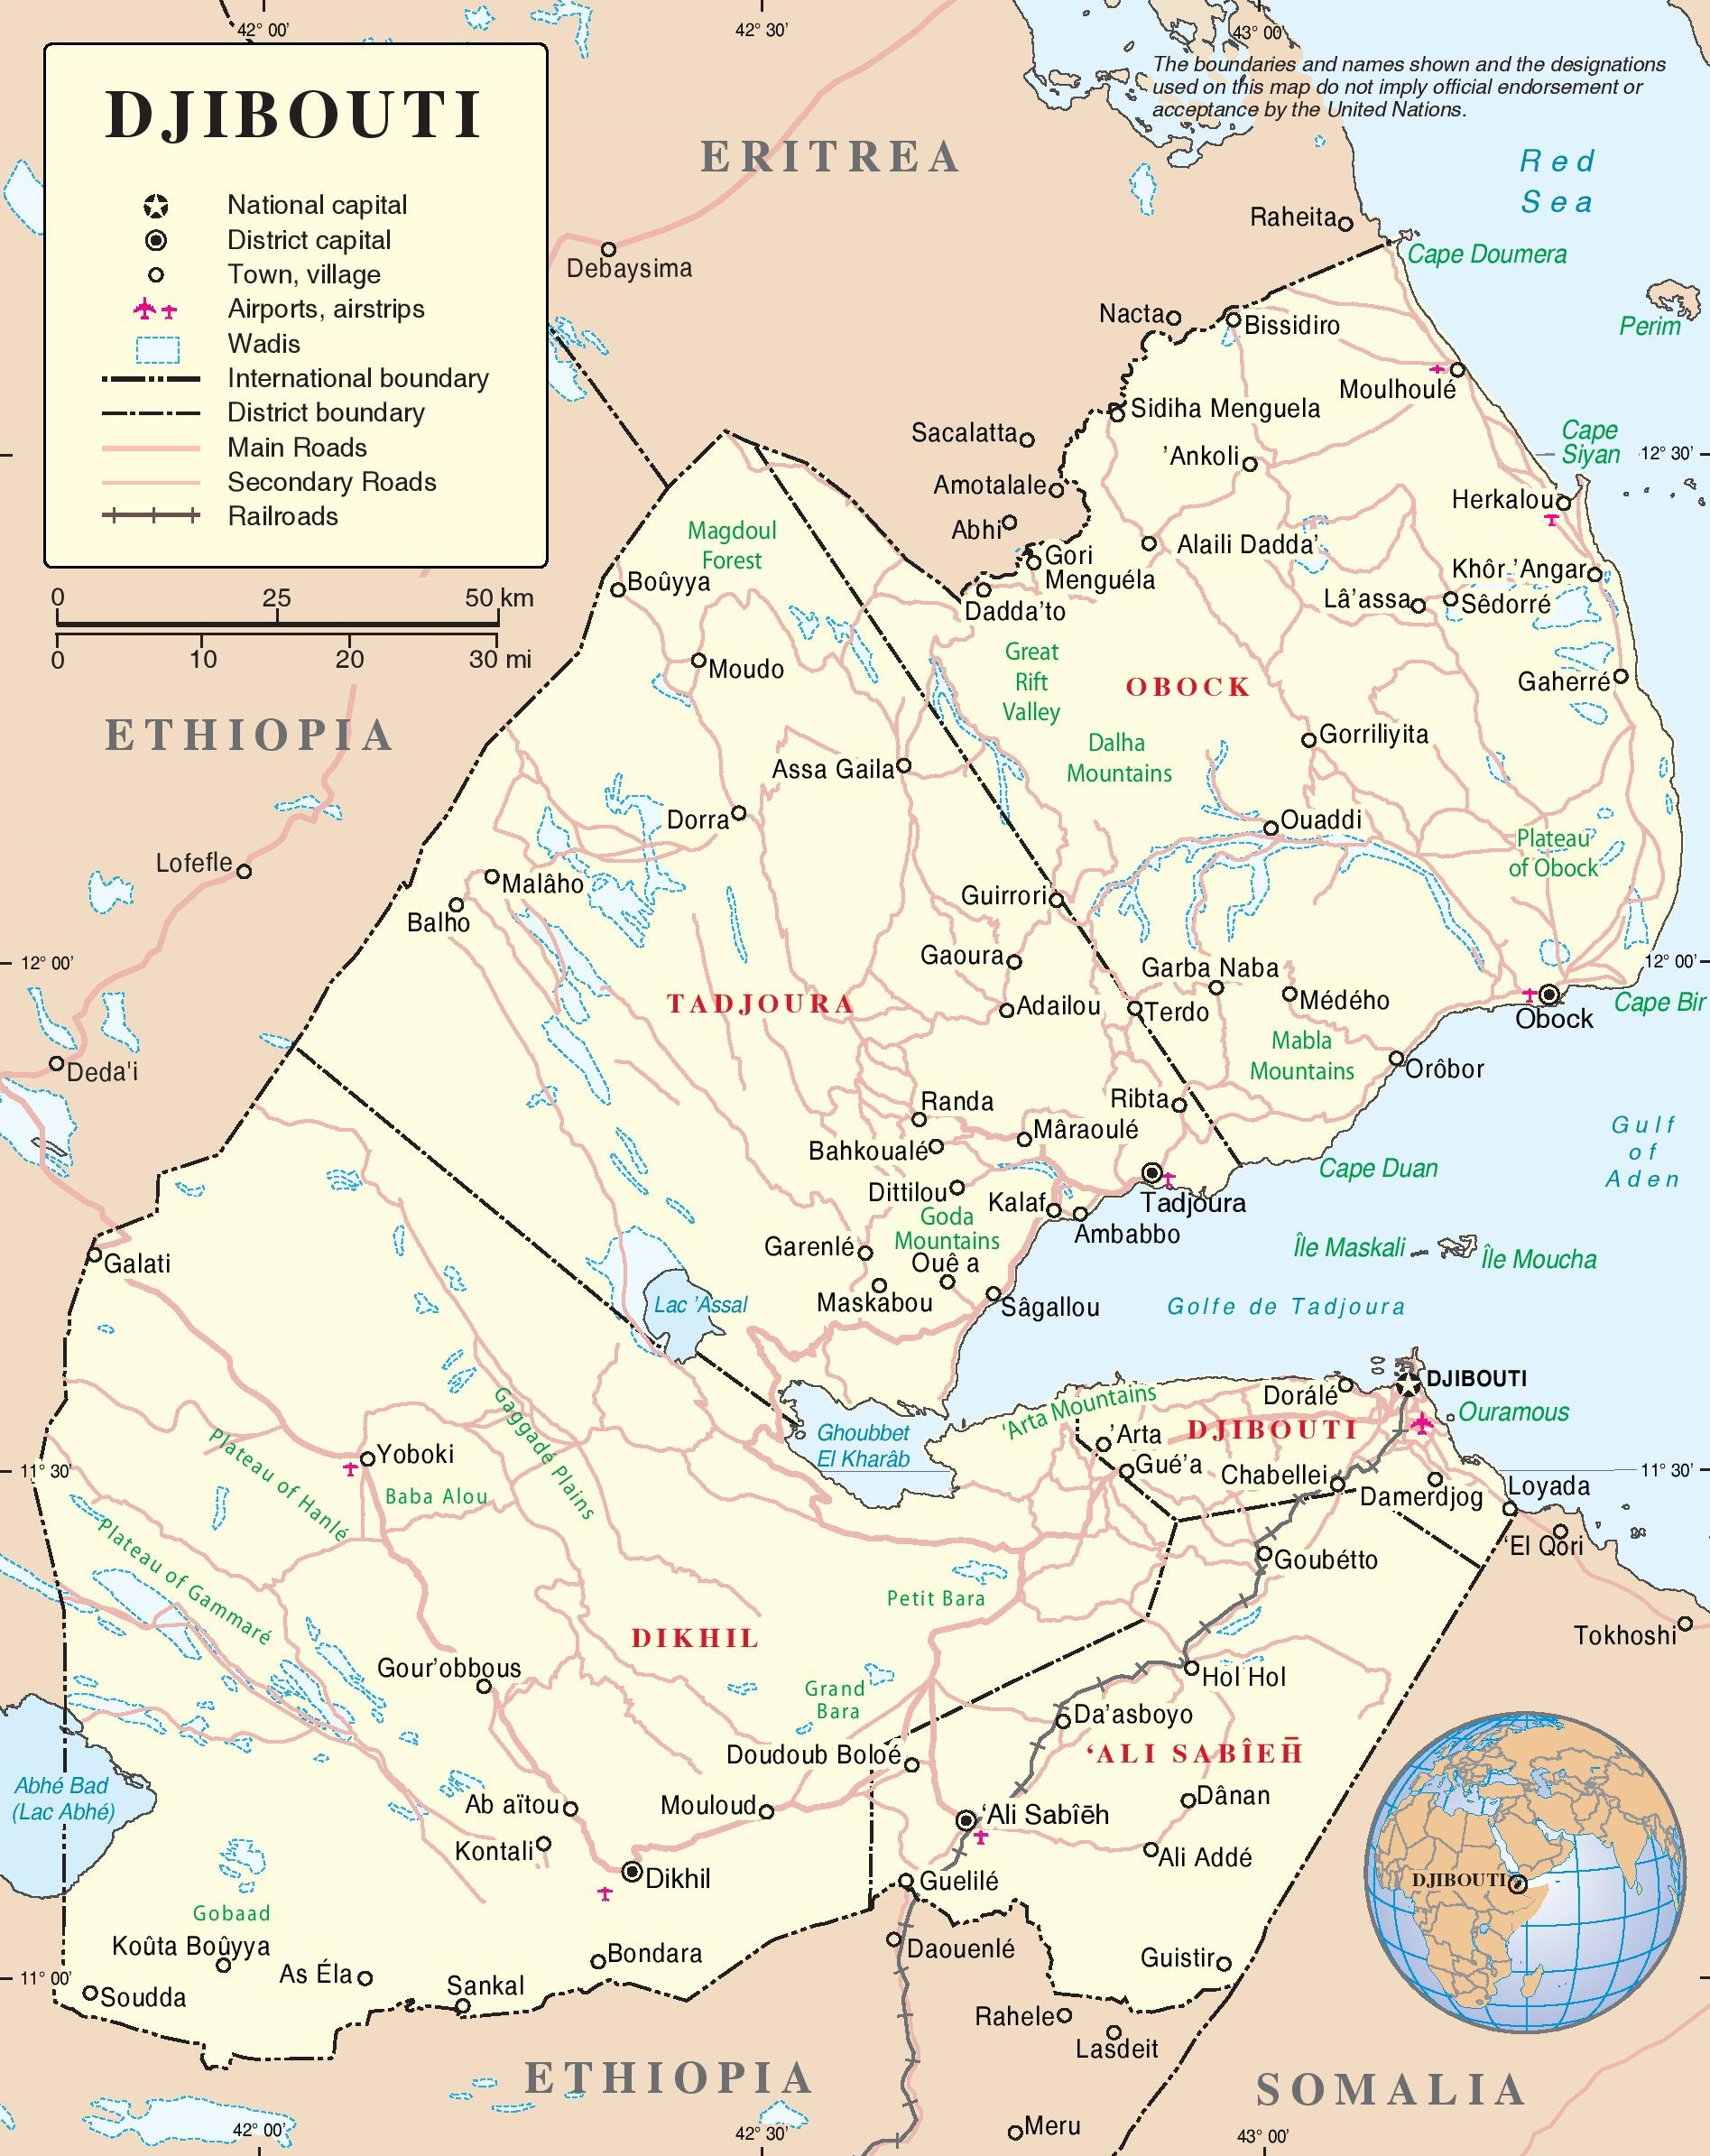 Djibouti political map on